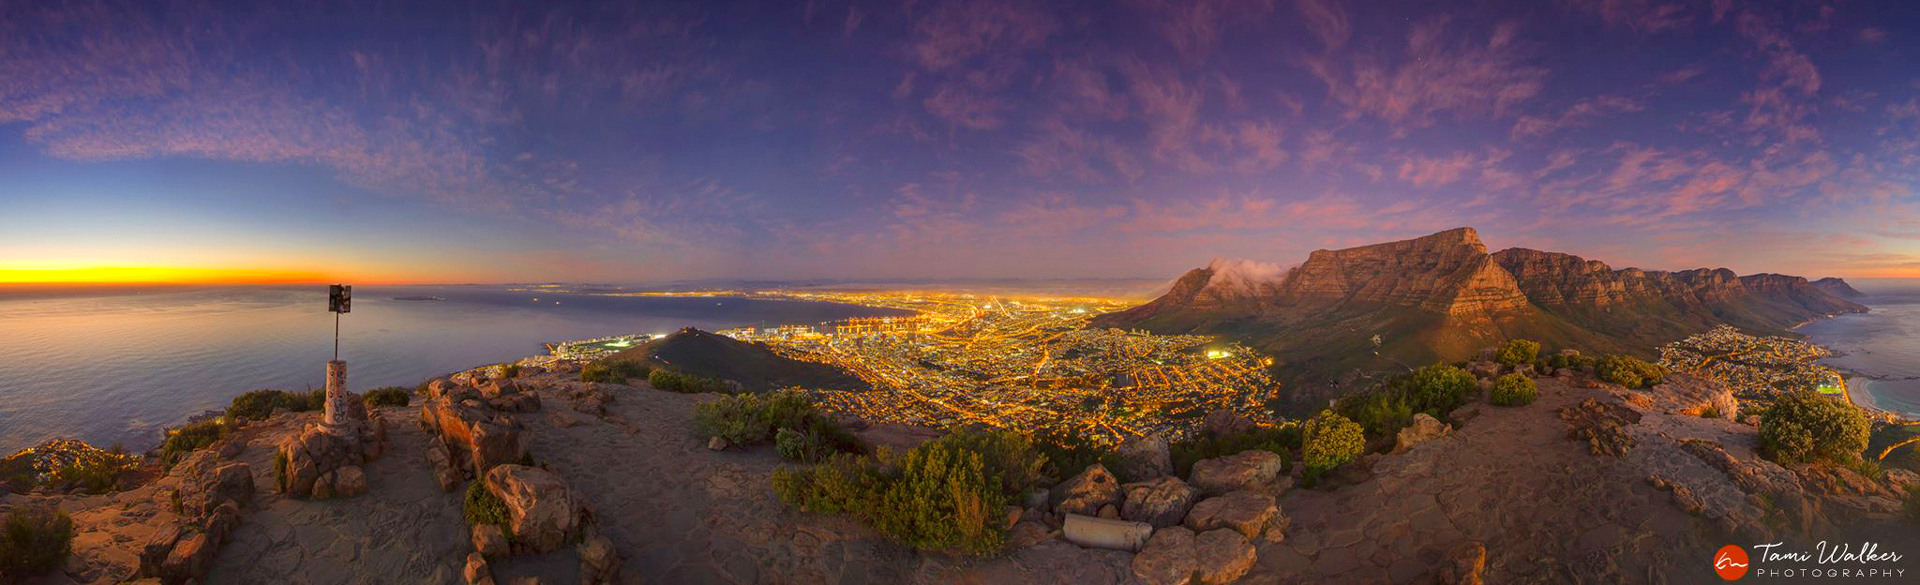 Cape Town from Lion's Head by Tami Walker